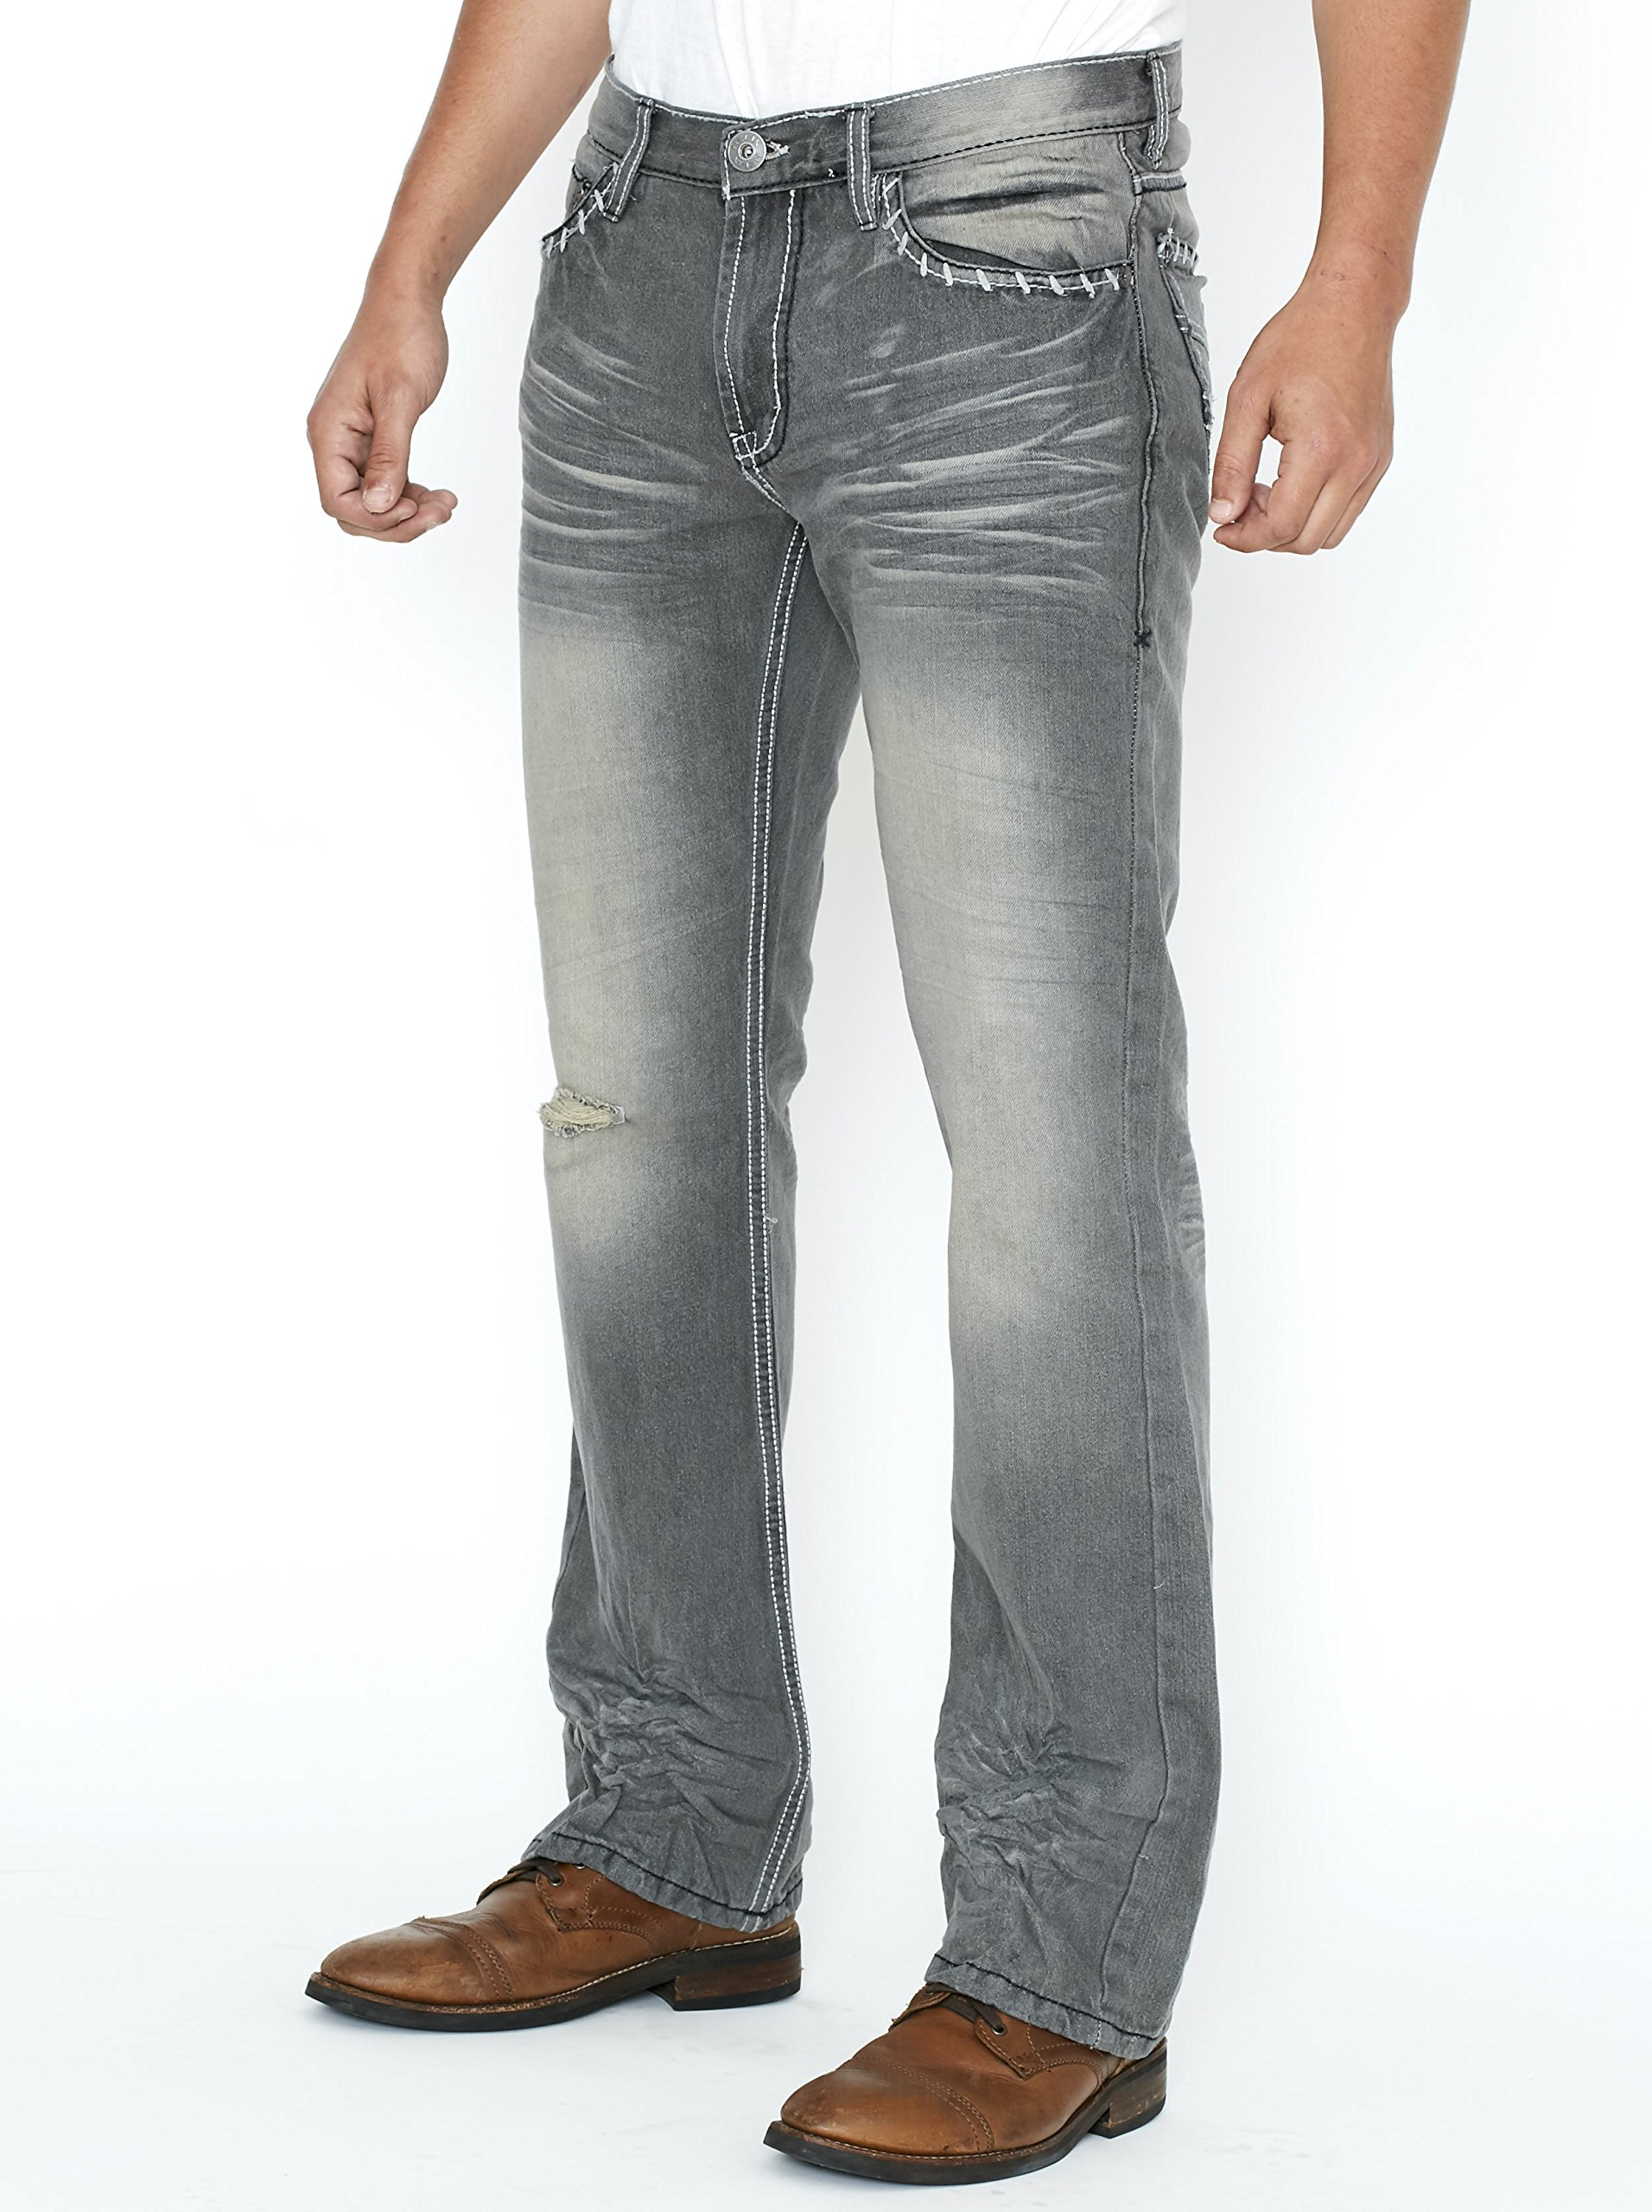 3e6182b726c Slim Bootcut Men s Jeans - Faded and Ripped Denim Jean - Soft ...